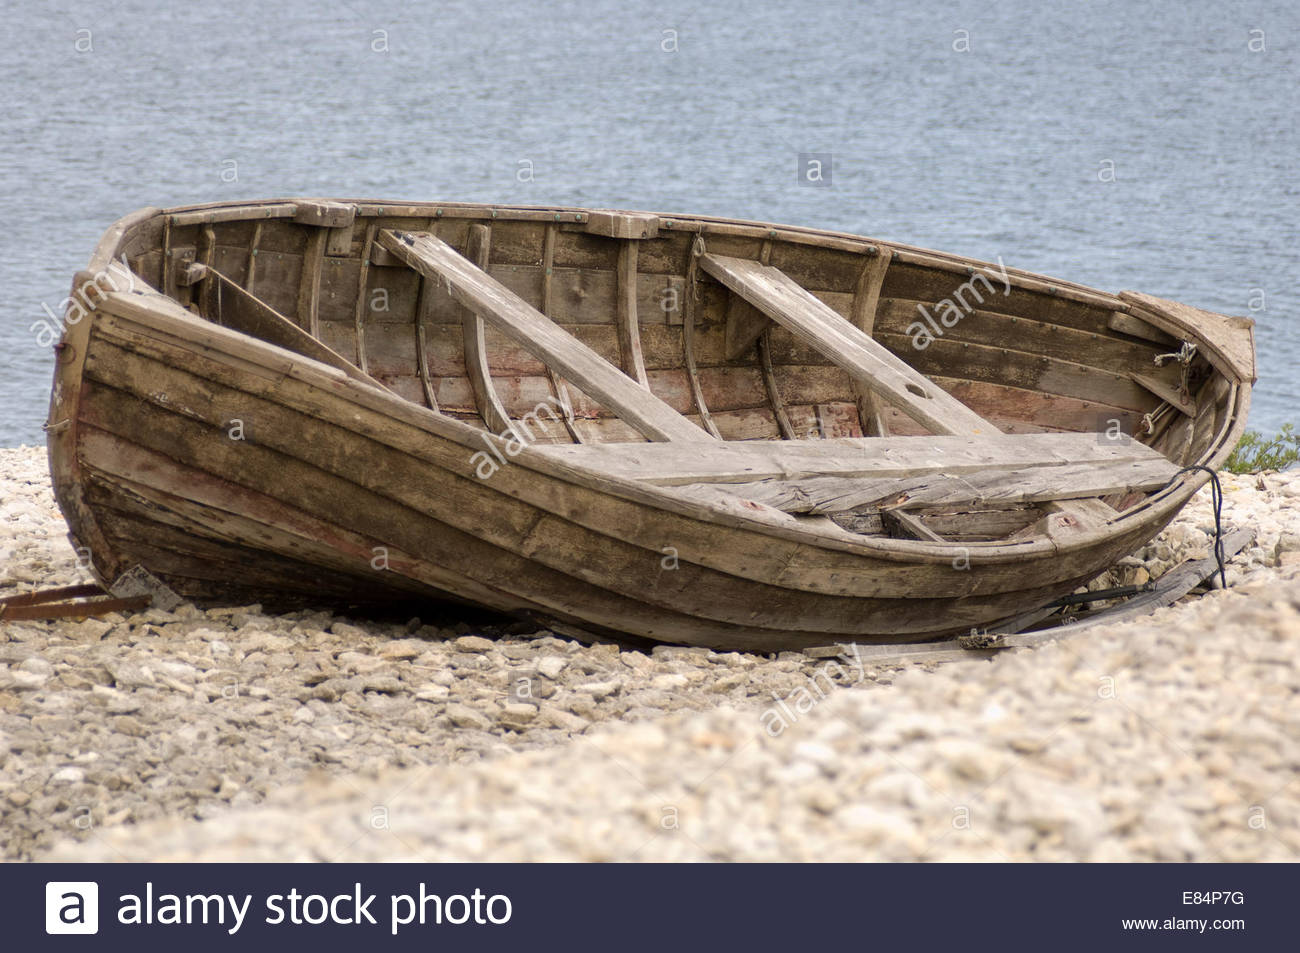 Old broken wooden boat on a beach Stock Photo, Royalty ...